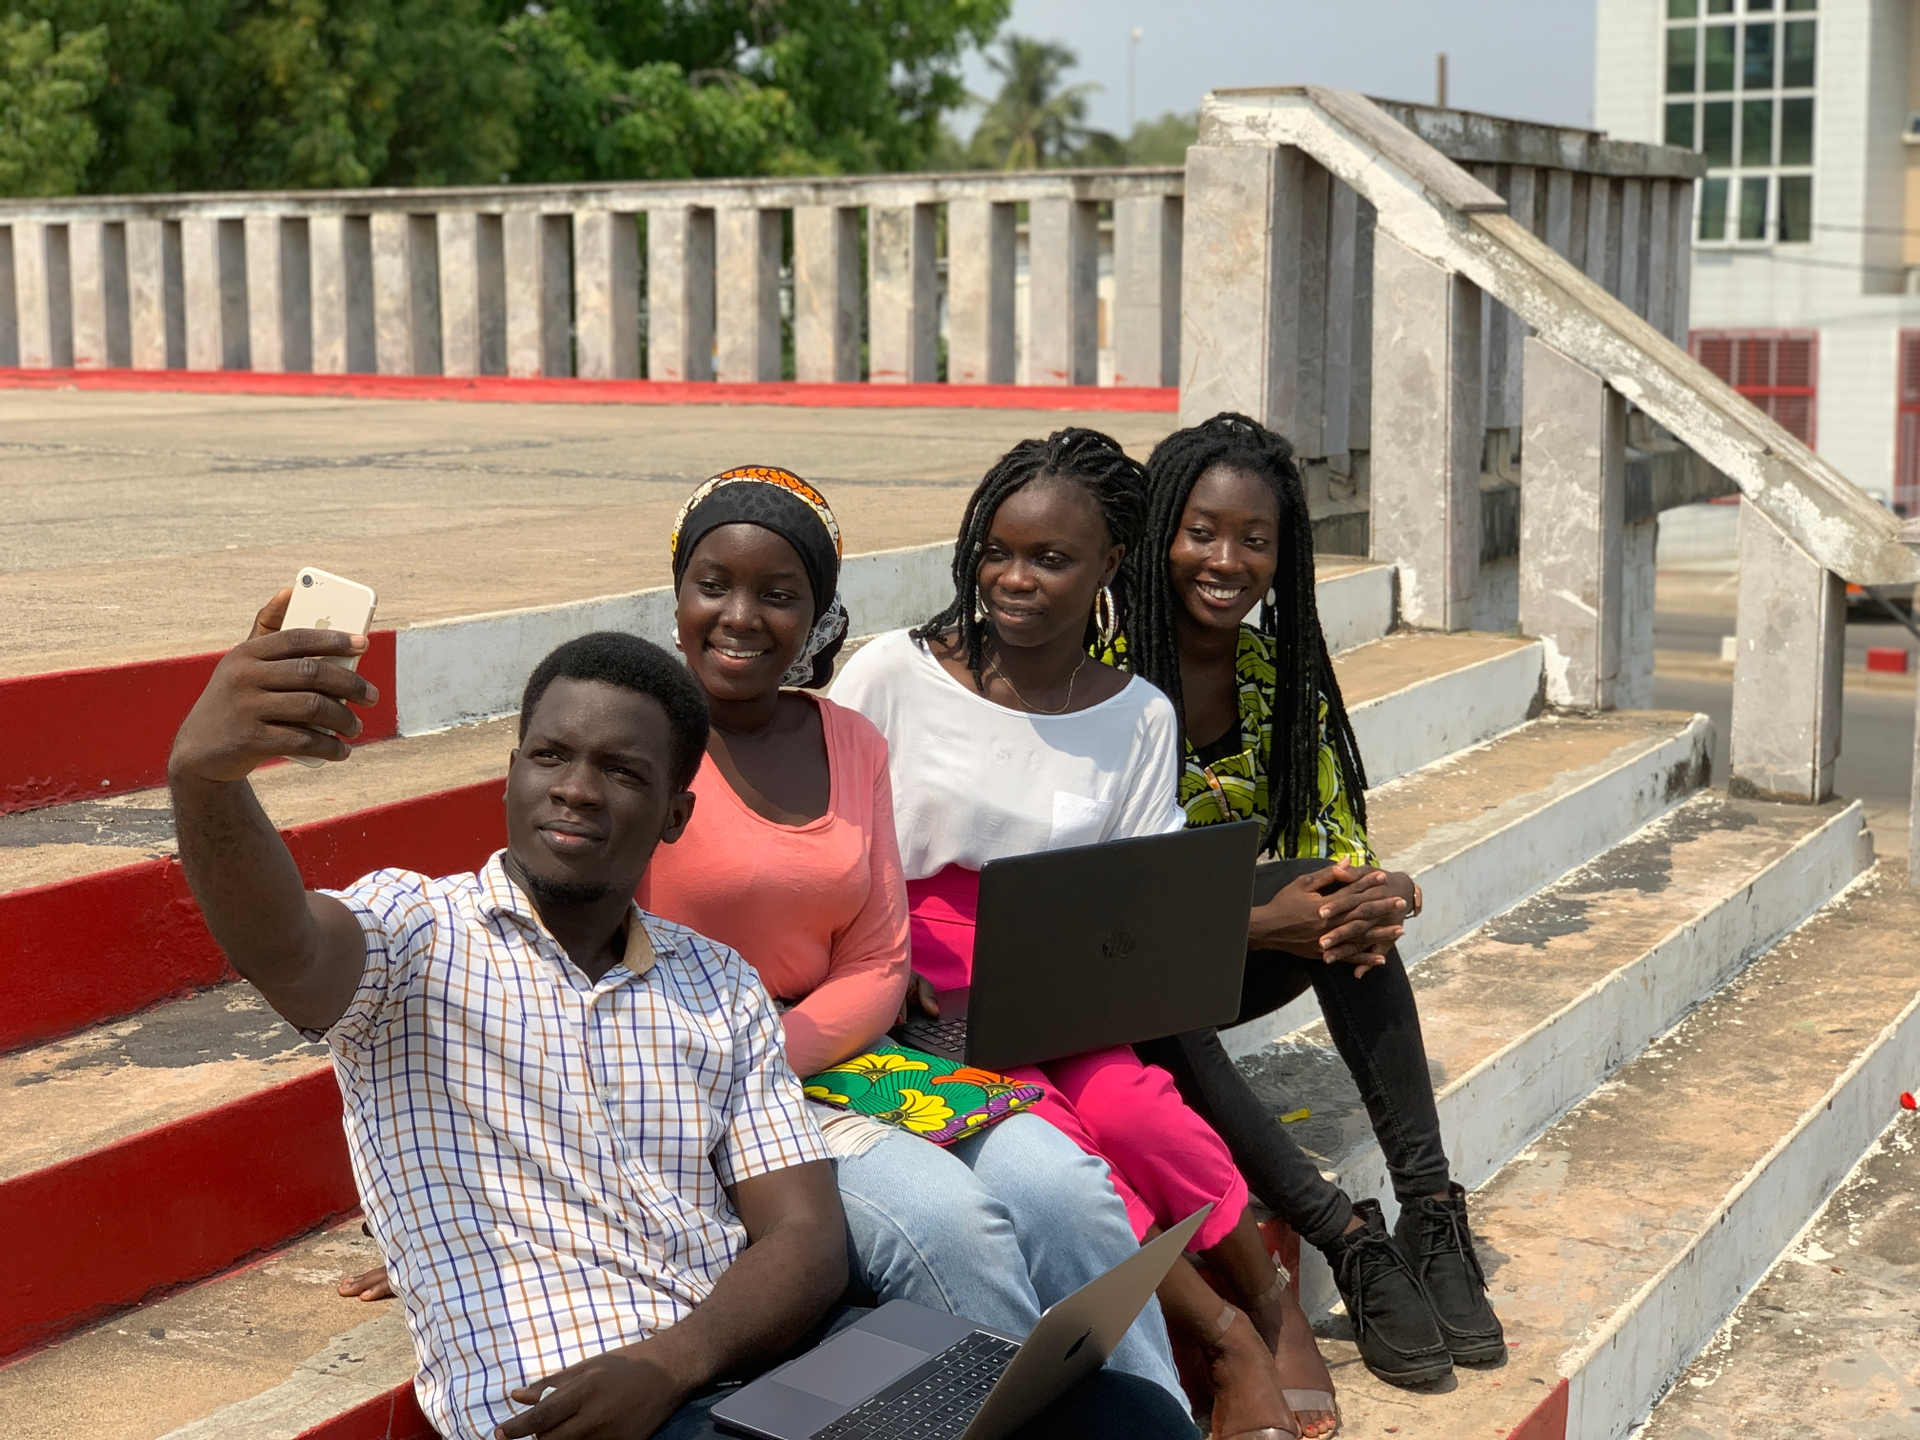 Africa, free, photo, happiness, selfie, friends, team, joy, computer, laptop, smile, colleagues, team, public square, focus, people, facial expression, man, women, notebook